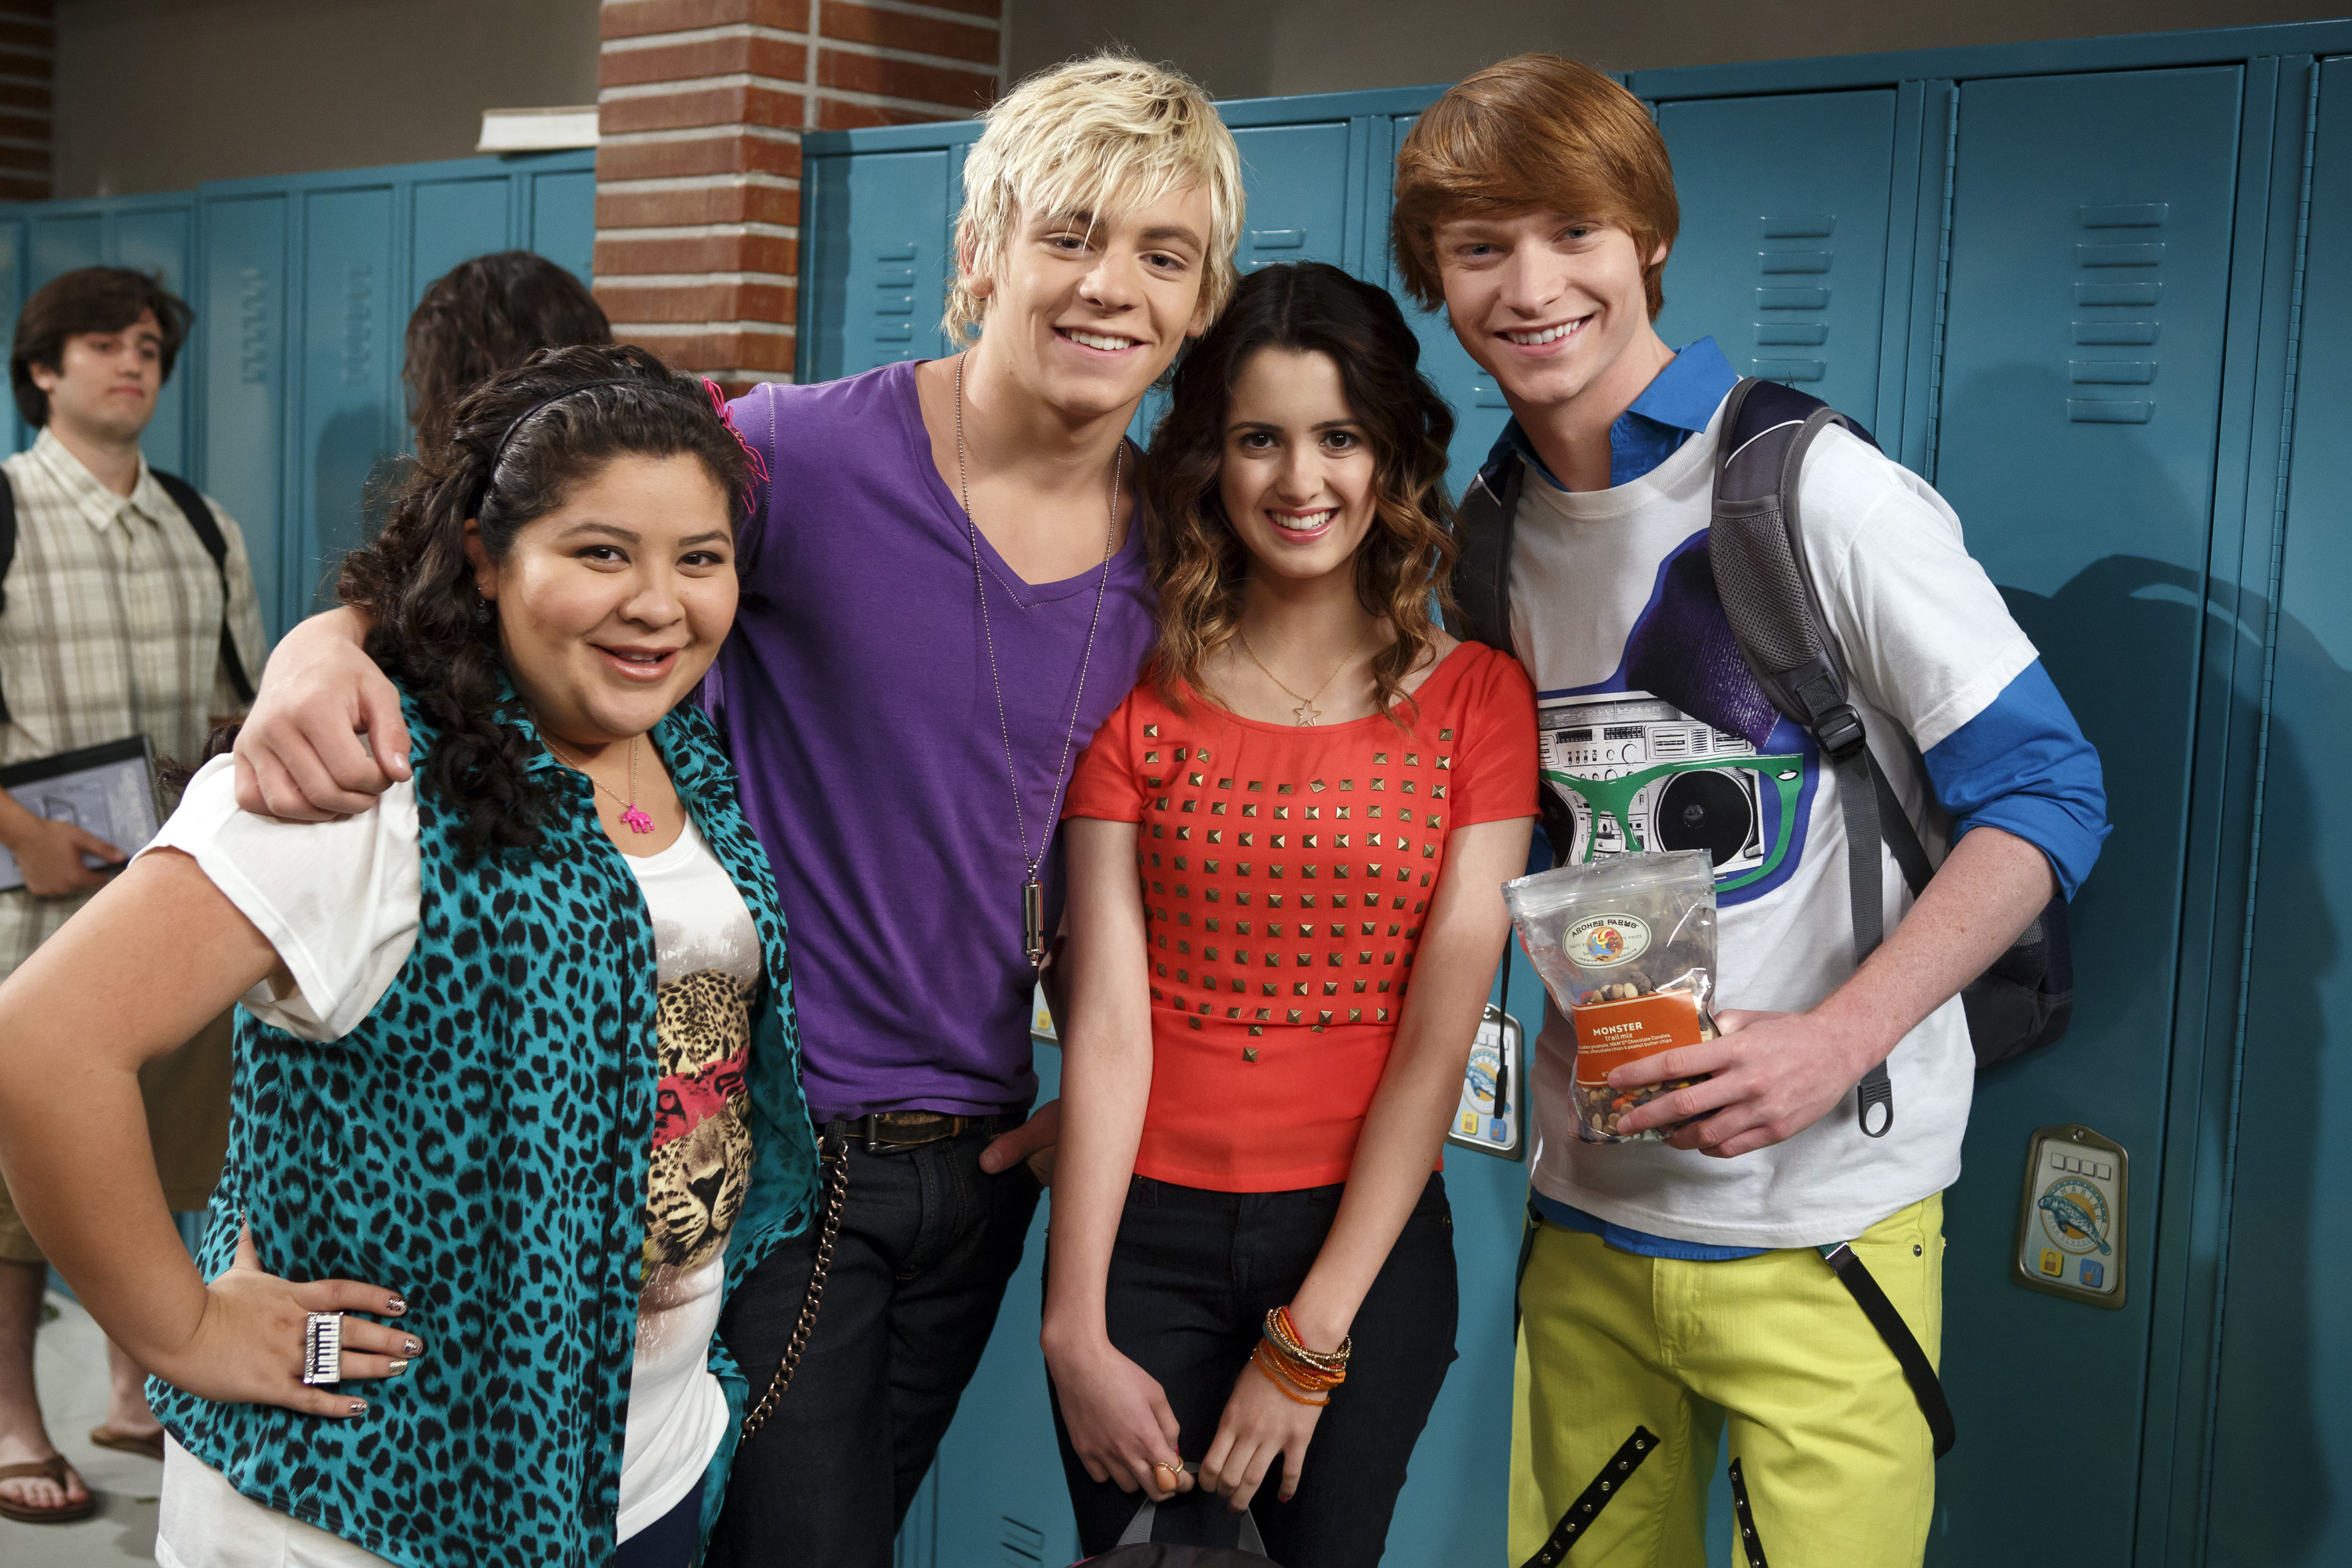 Do austin and ally get together